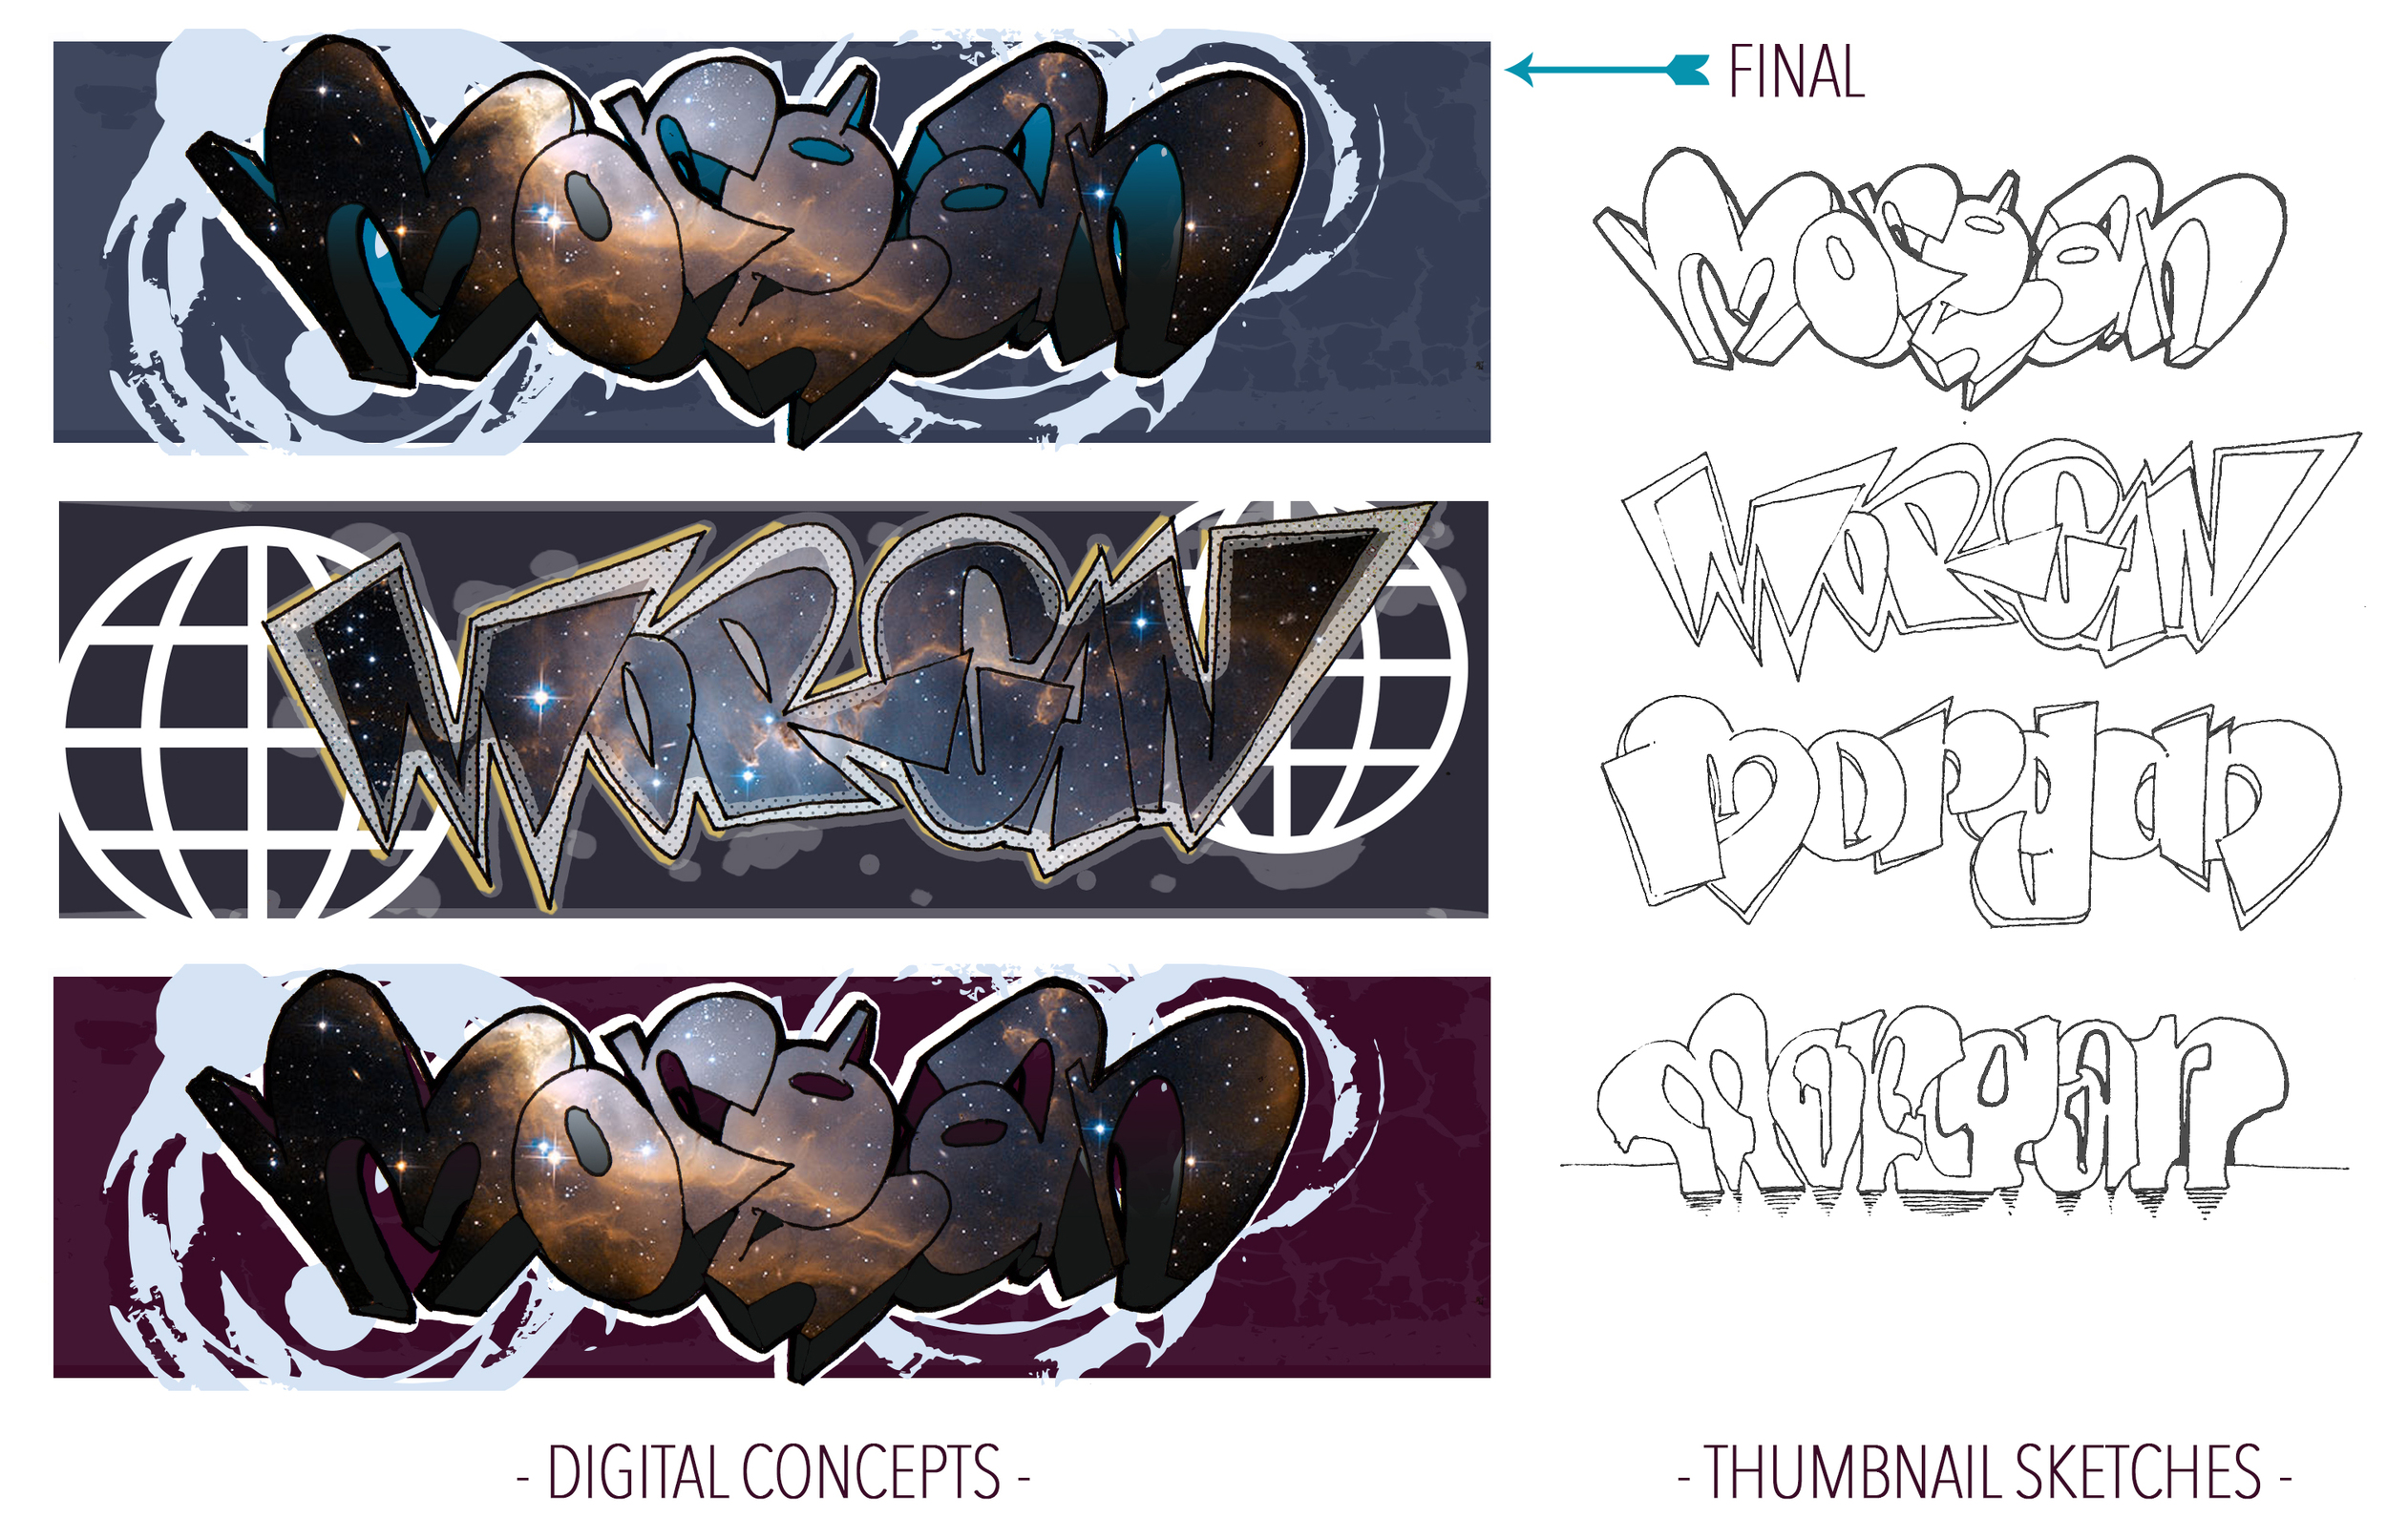 """Client wanted """"graffiti"""" of last name """"Morgan"""" with blue and purple. Sketches and digital concepts."""